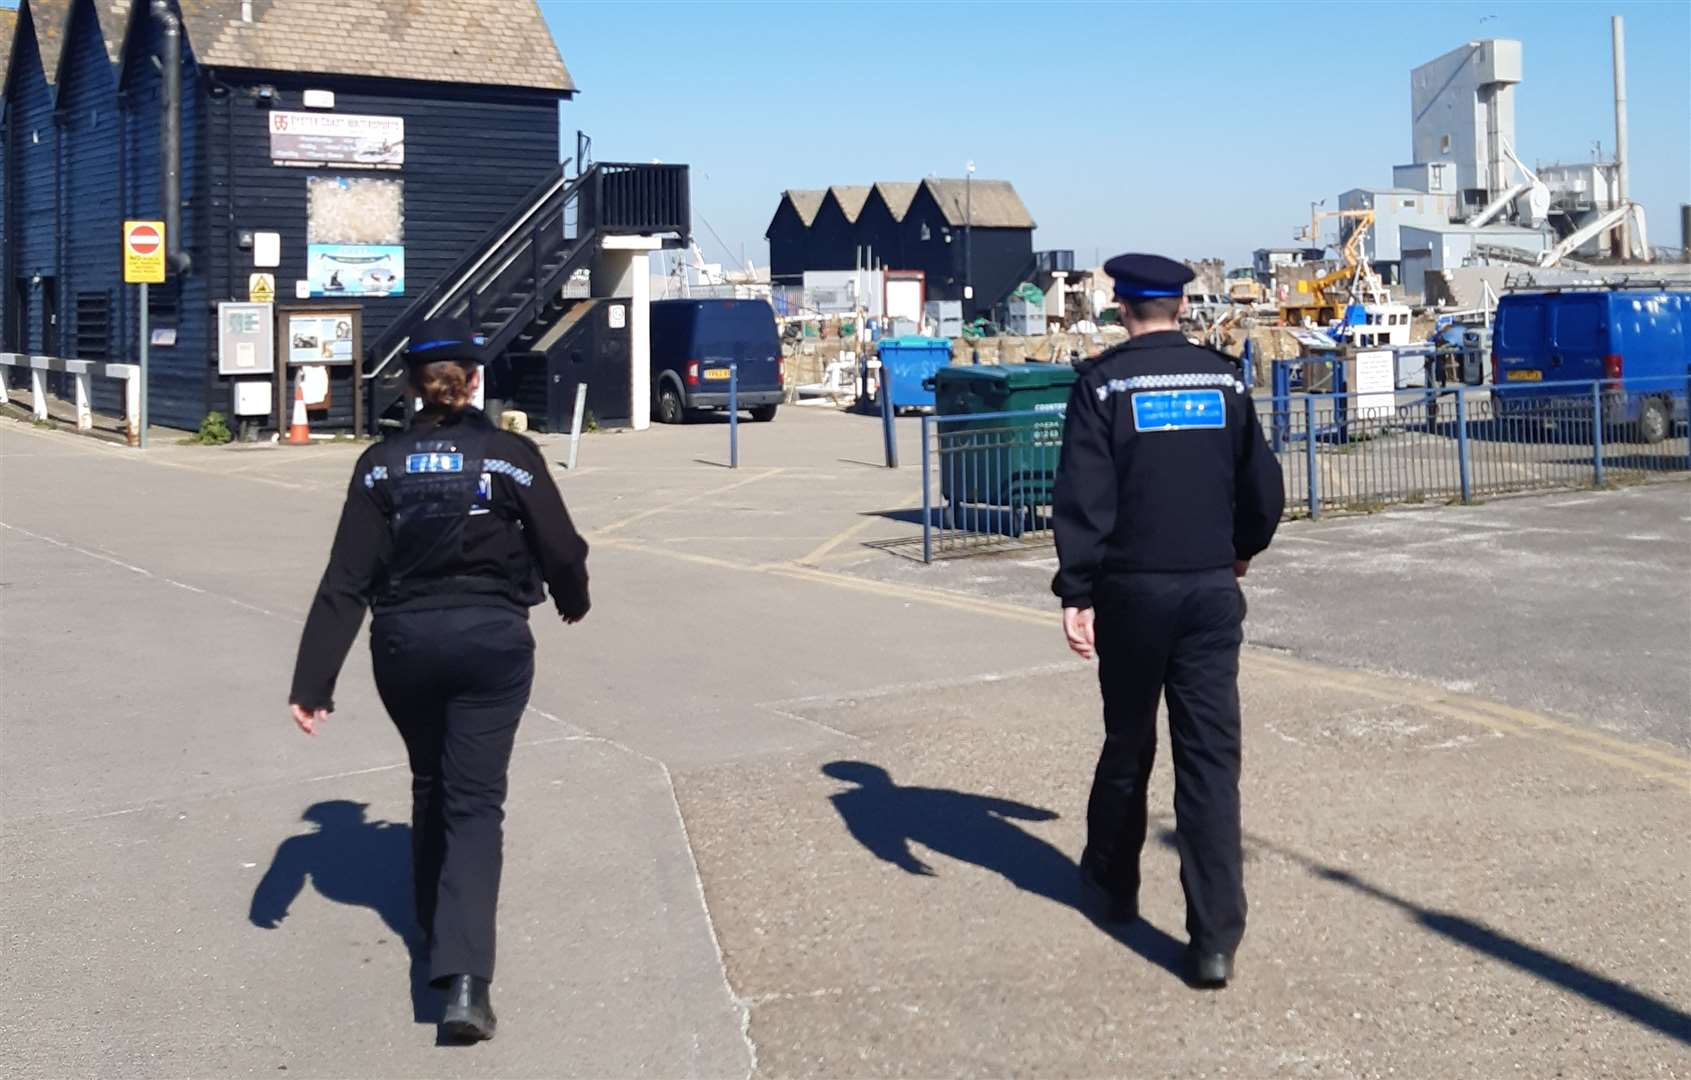 Police out on patrol in Whitstable during lockdown